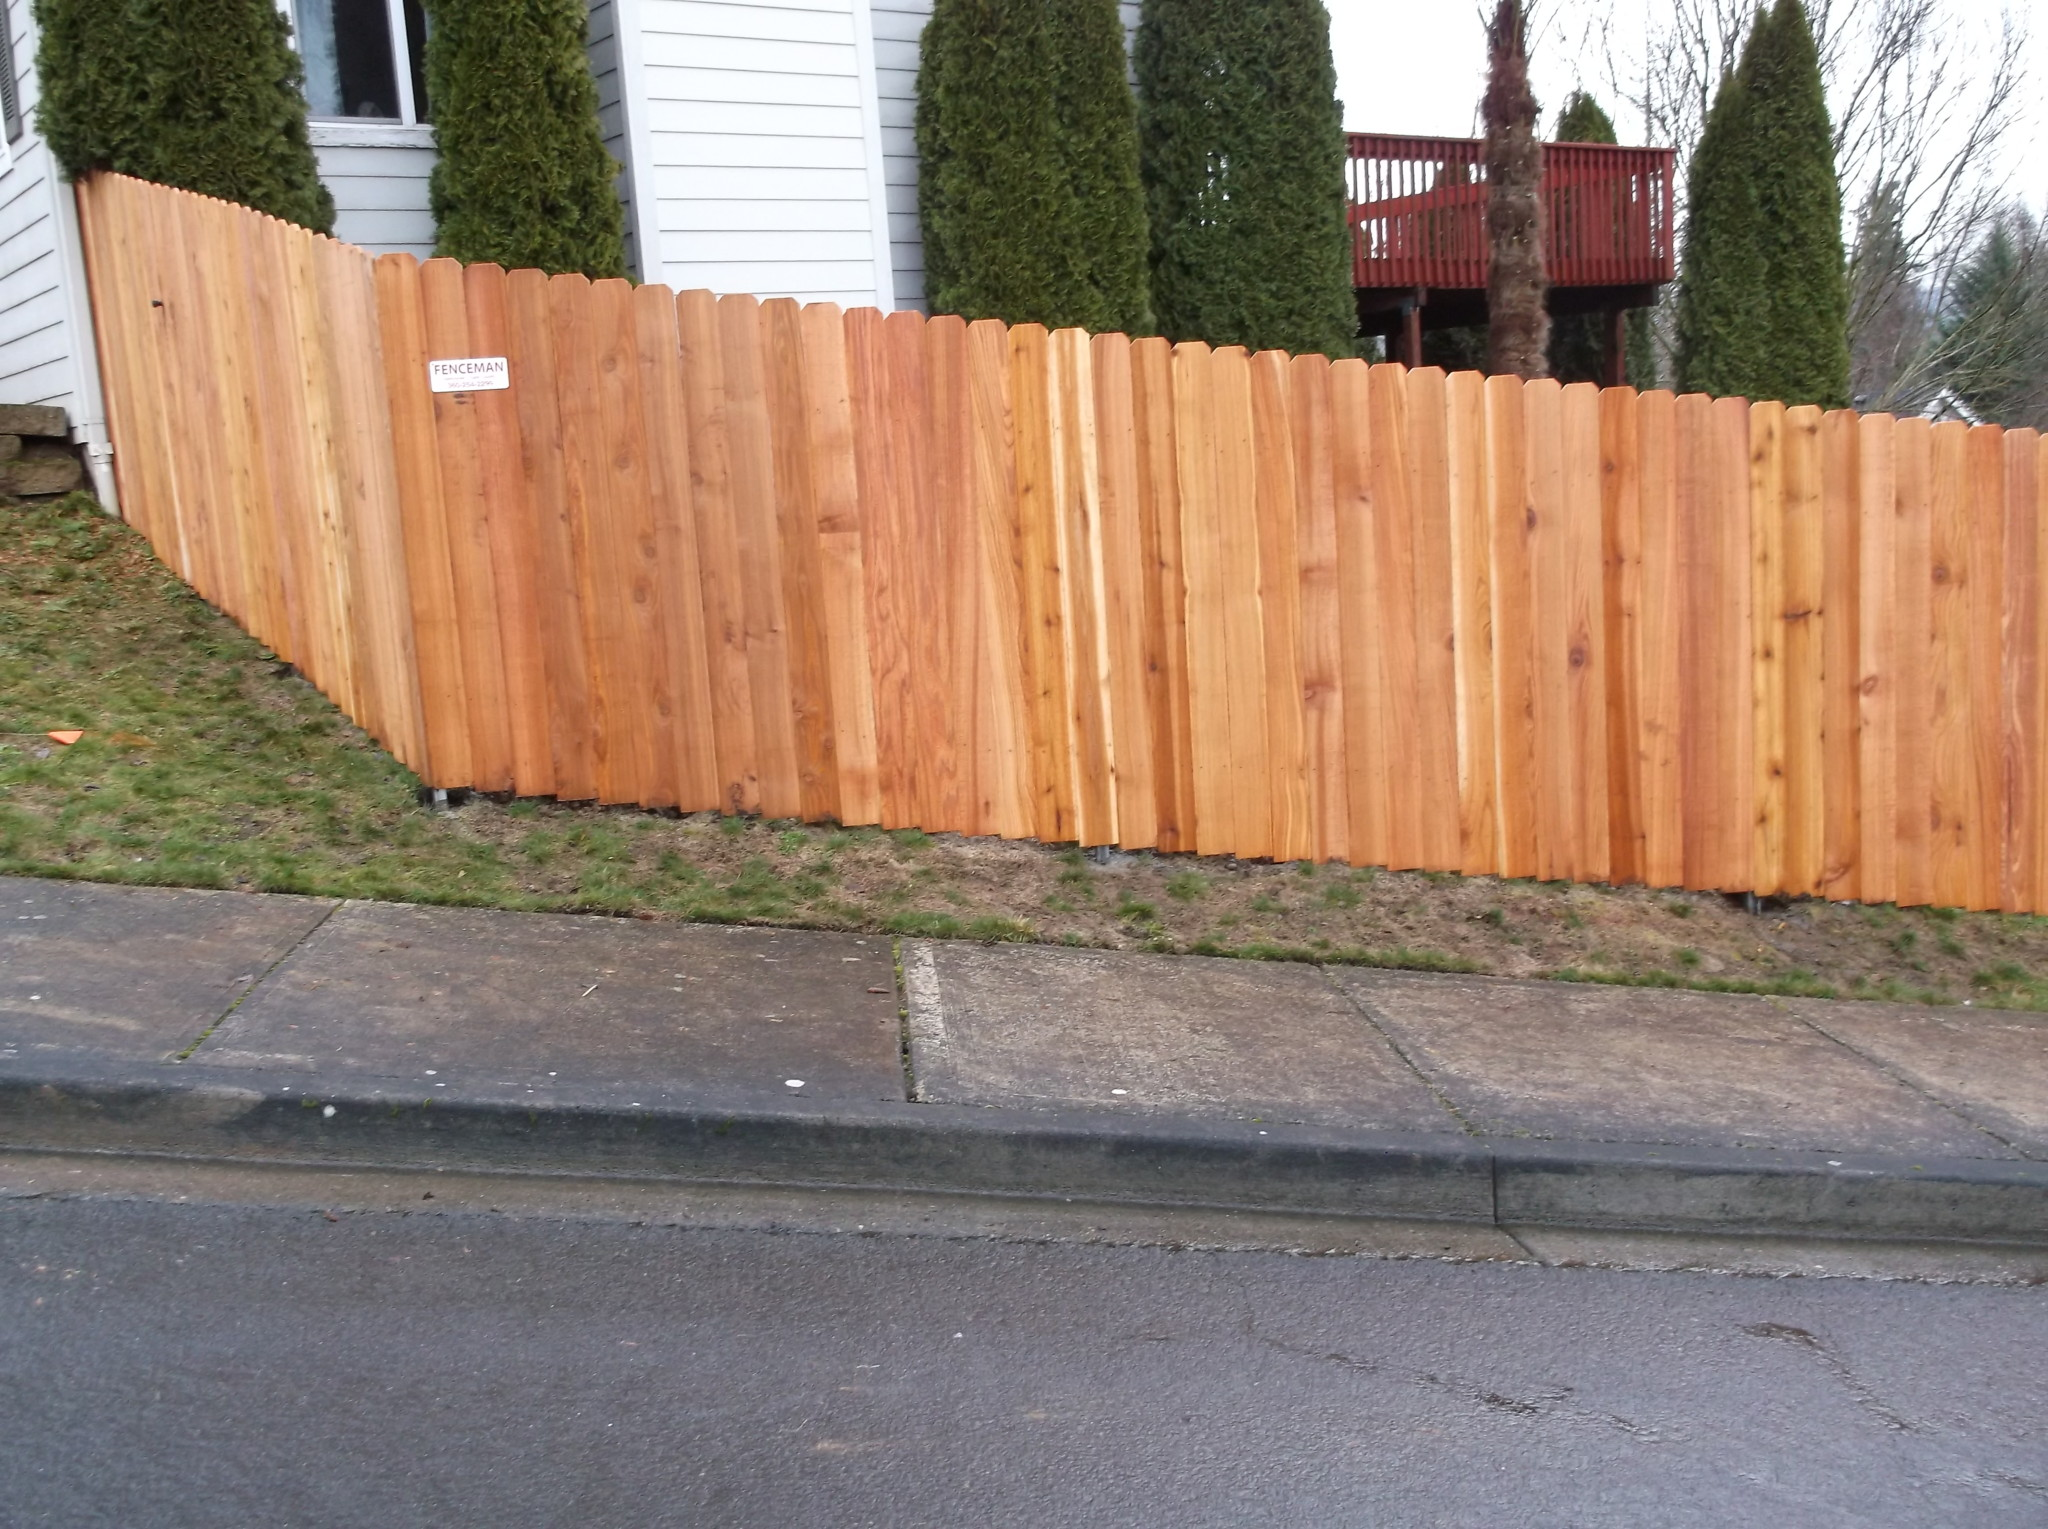 Dog Eared Fence Follows Contours of the property. Contact Vancouver's Best Fence Builders. The Fenceman Fence Company installs wood, vinyl, chain link and ornamental iron fences. We also offer materials for the do it yourselfer.